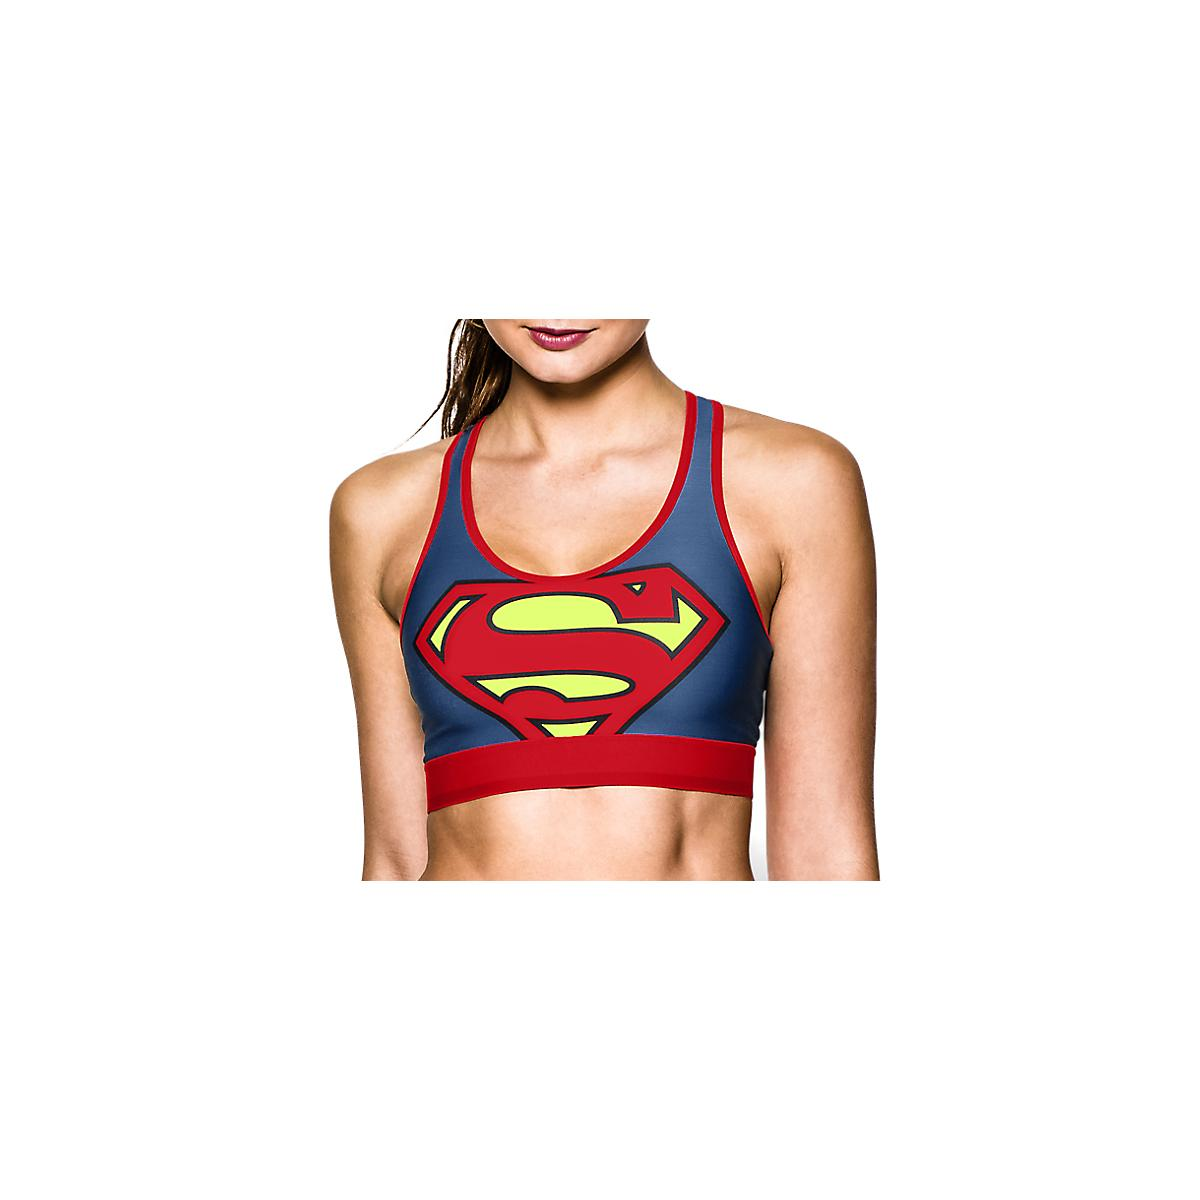 e49107f4d1971 Womens Under Armour Alter Ego Supergirl Sports Bra at Road Runner Sports